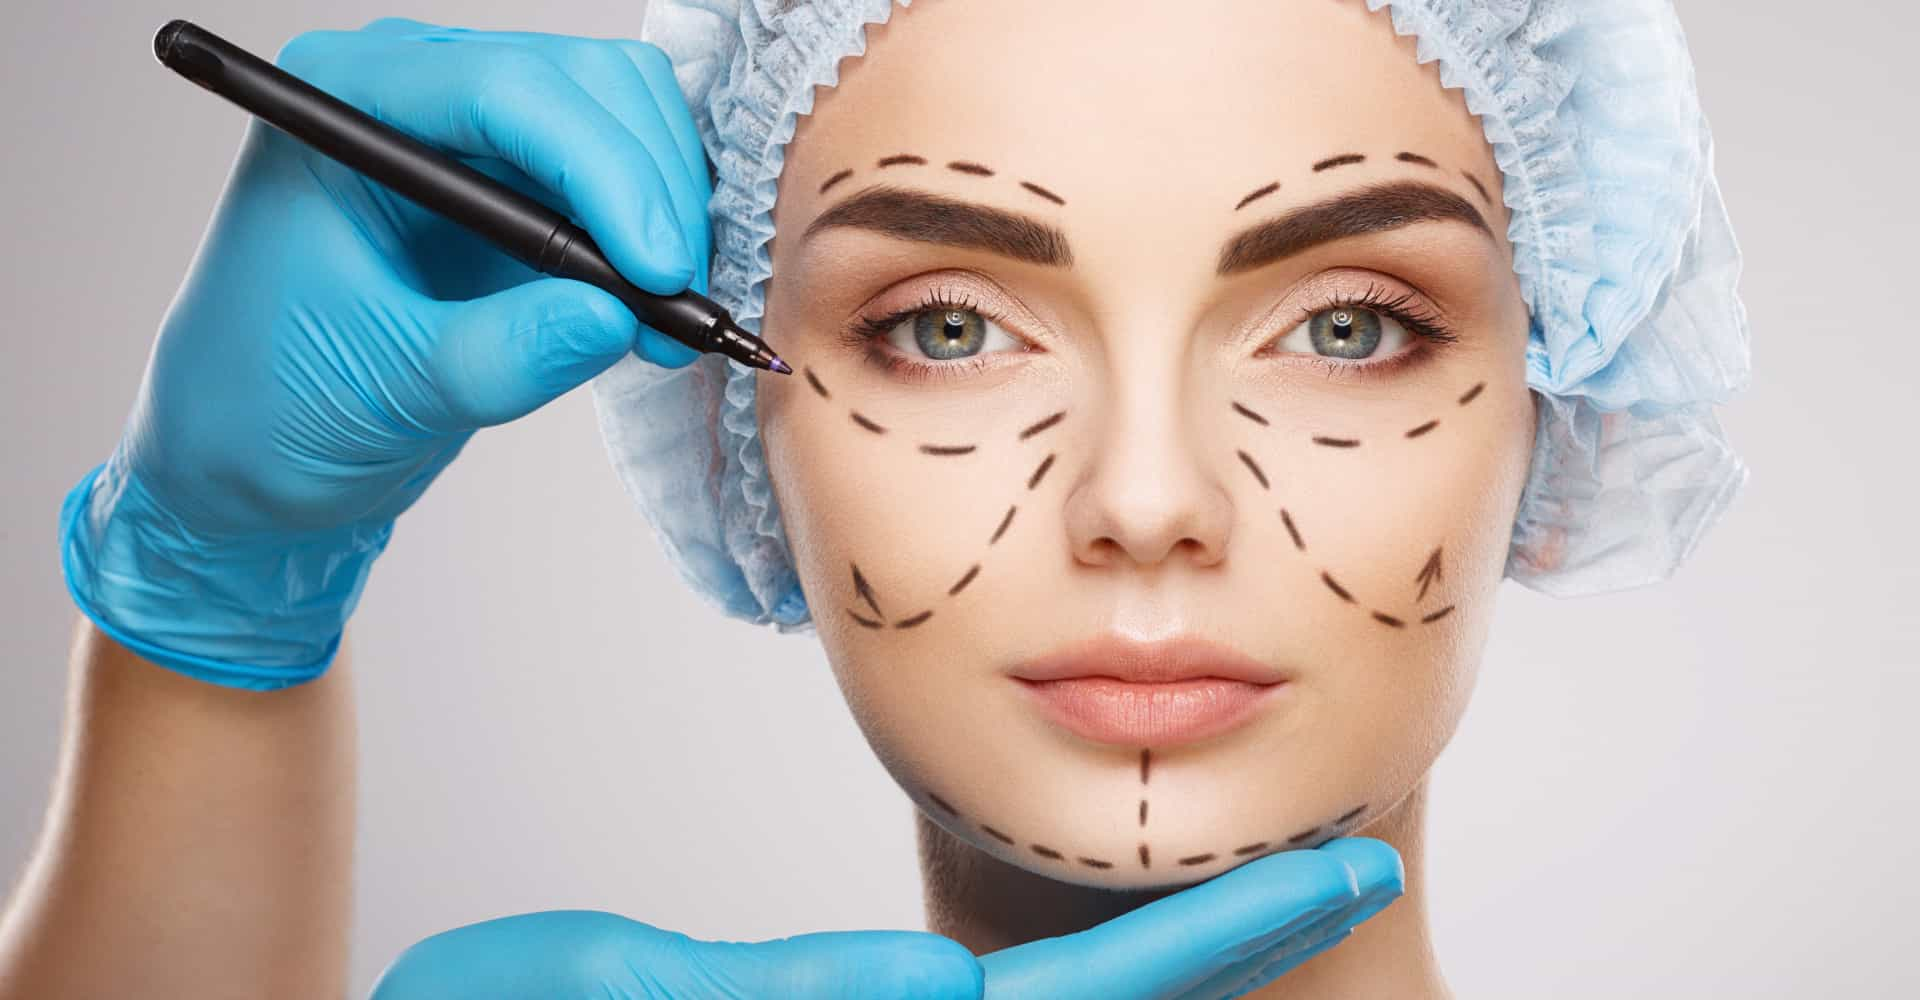 One in three Americans are considering cosmetic surgery, according to study